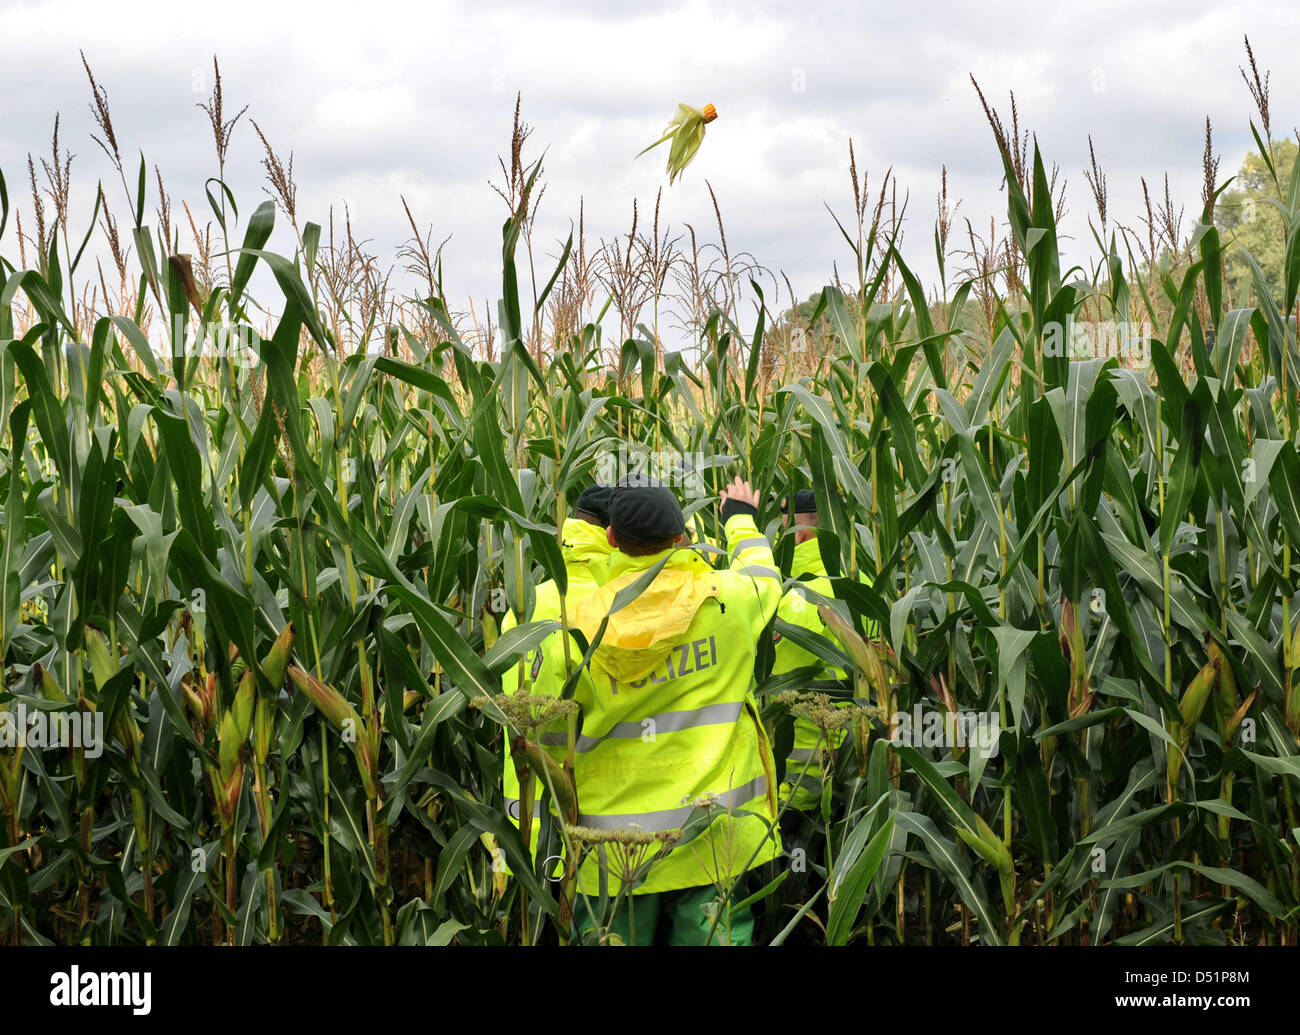 Police officers search a cornfield near Mariendonk Abby near the town of Grefrath, Germany, 26 September 2010. Police - Stock Image